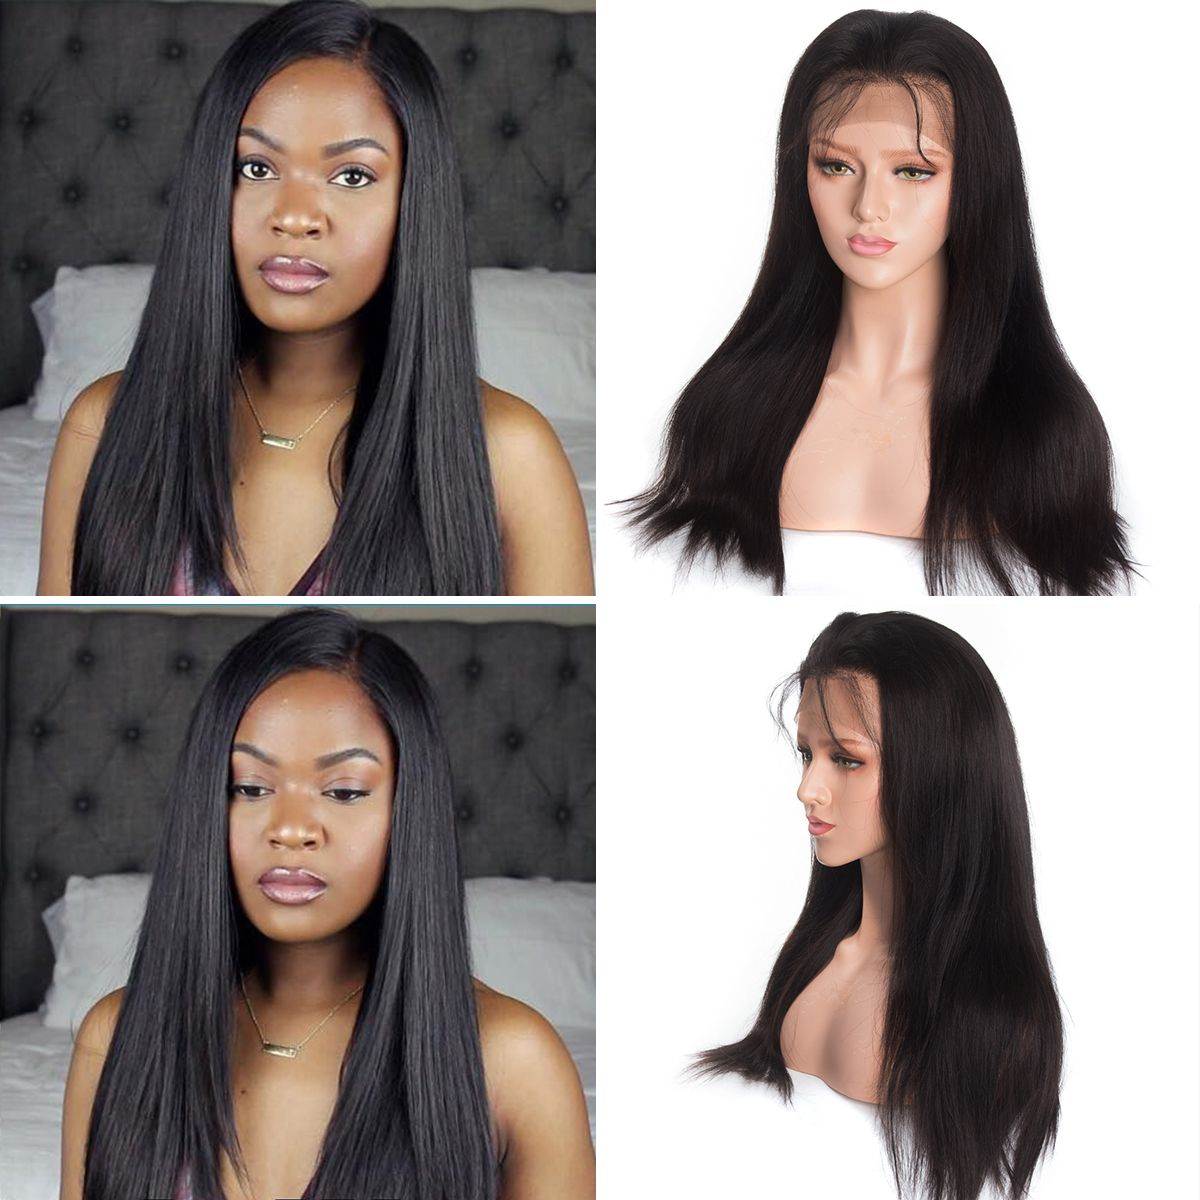 straight-360-lace-wig